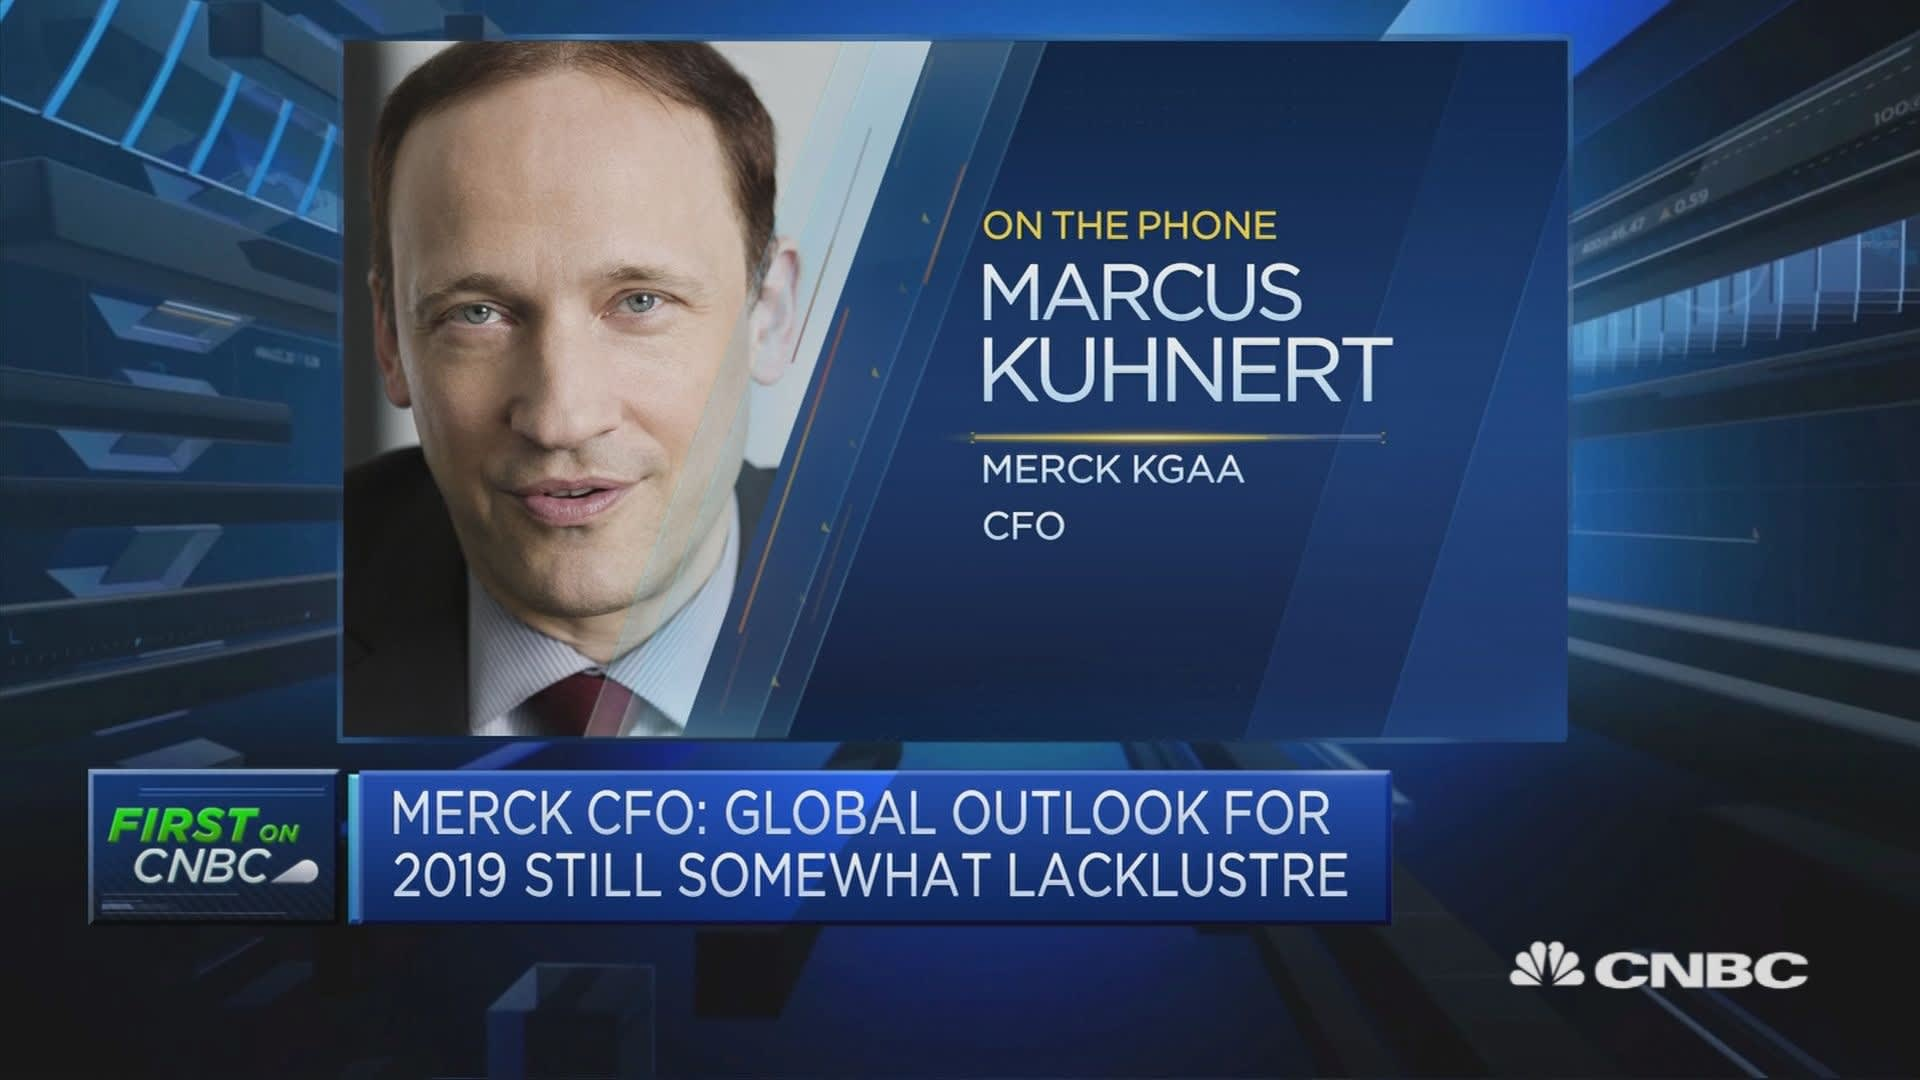 Outlook for 2019 still 'somewhat lackluster' but will be back to growth in 2020, Merck KGaA CFO says